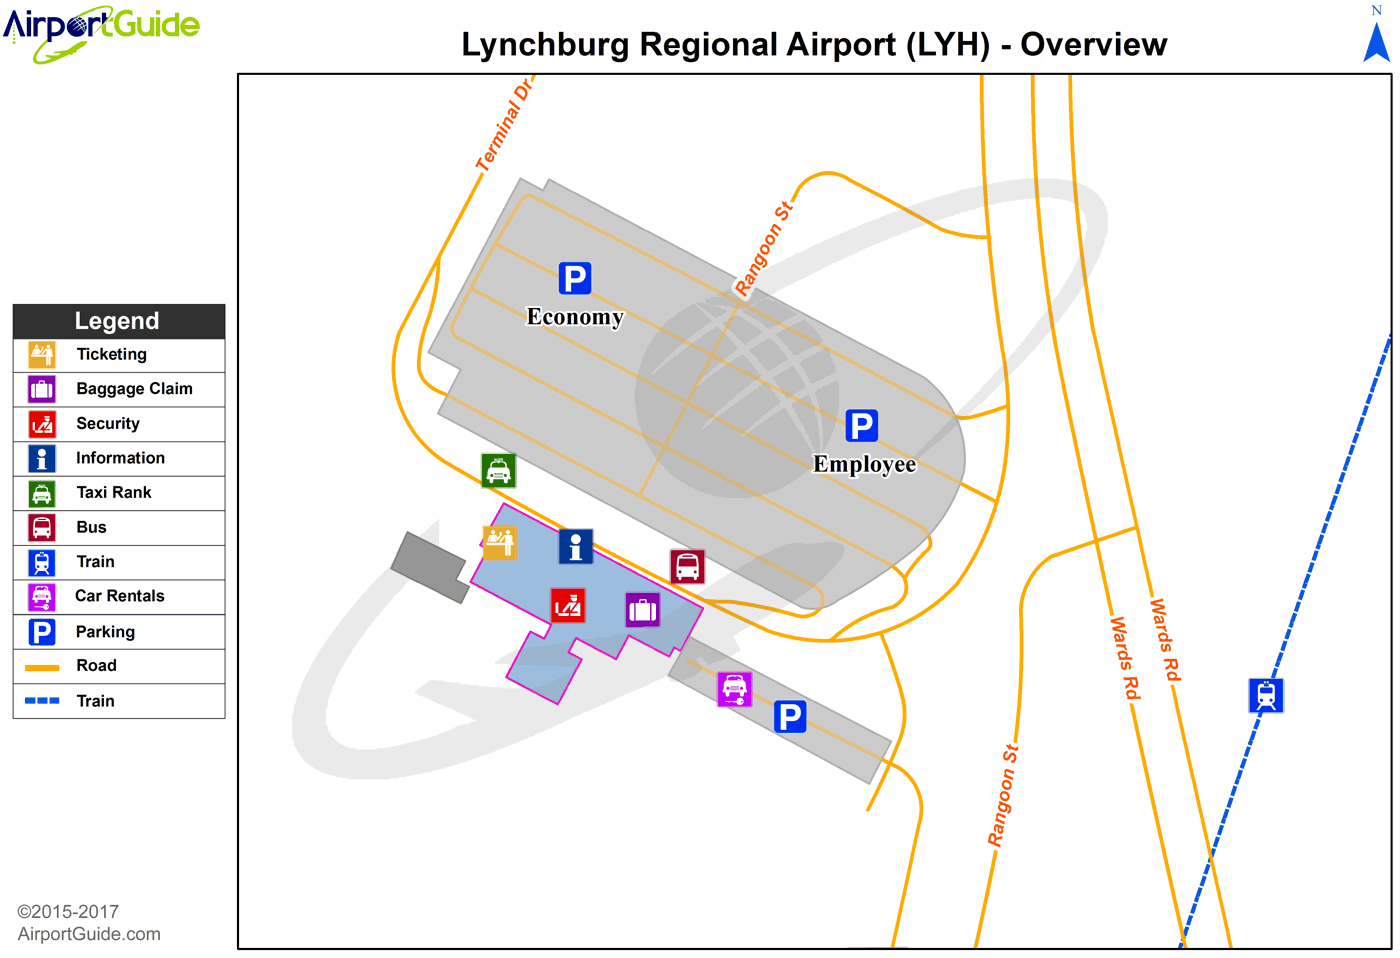 Lynchburg Lynchburg RegionalPreston Glenn Field LYH Airport